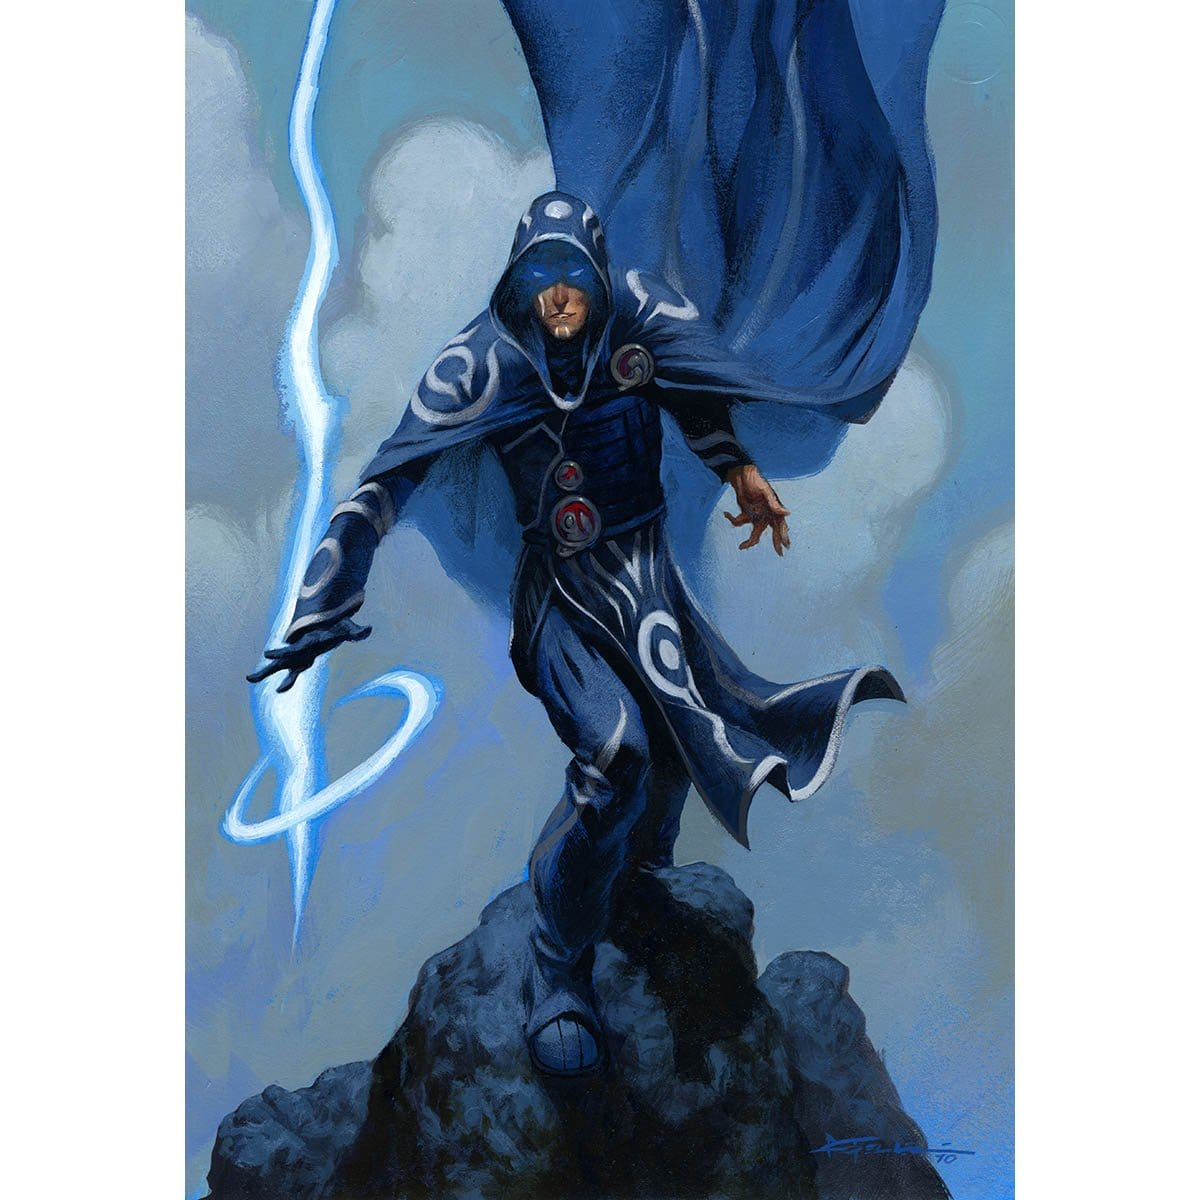 Jace Starter Deck Print - Print - Original Magic Art - Accessories for Magic the Gathering and other card games